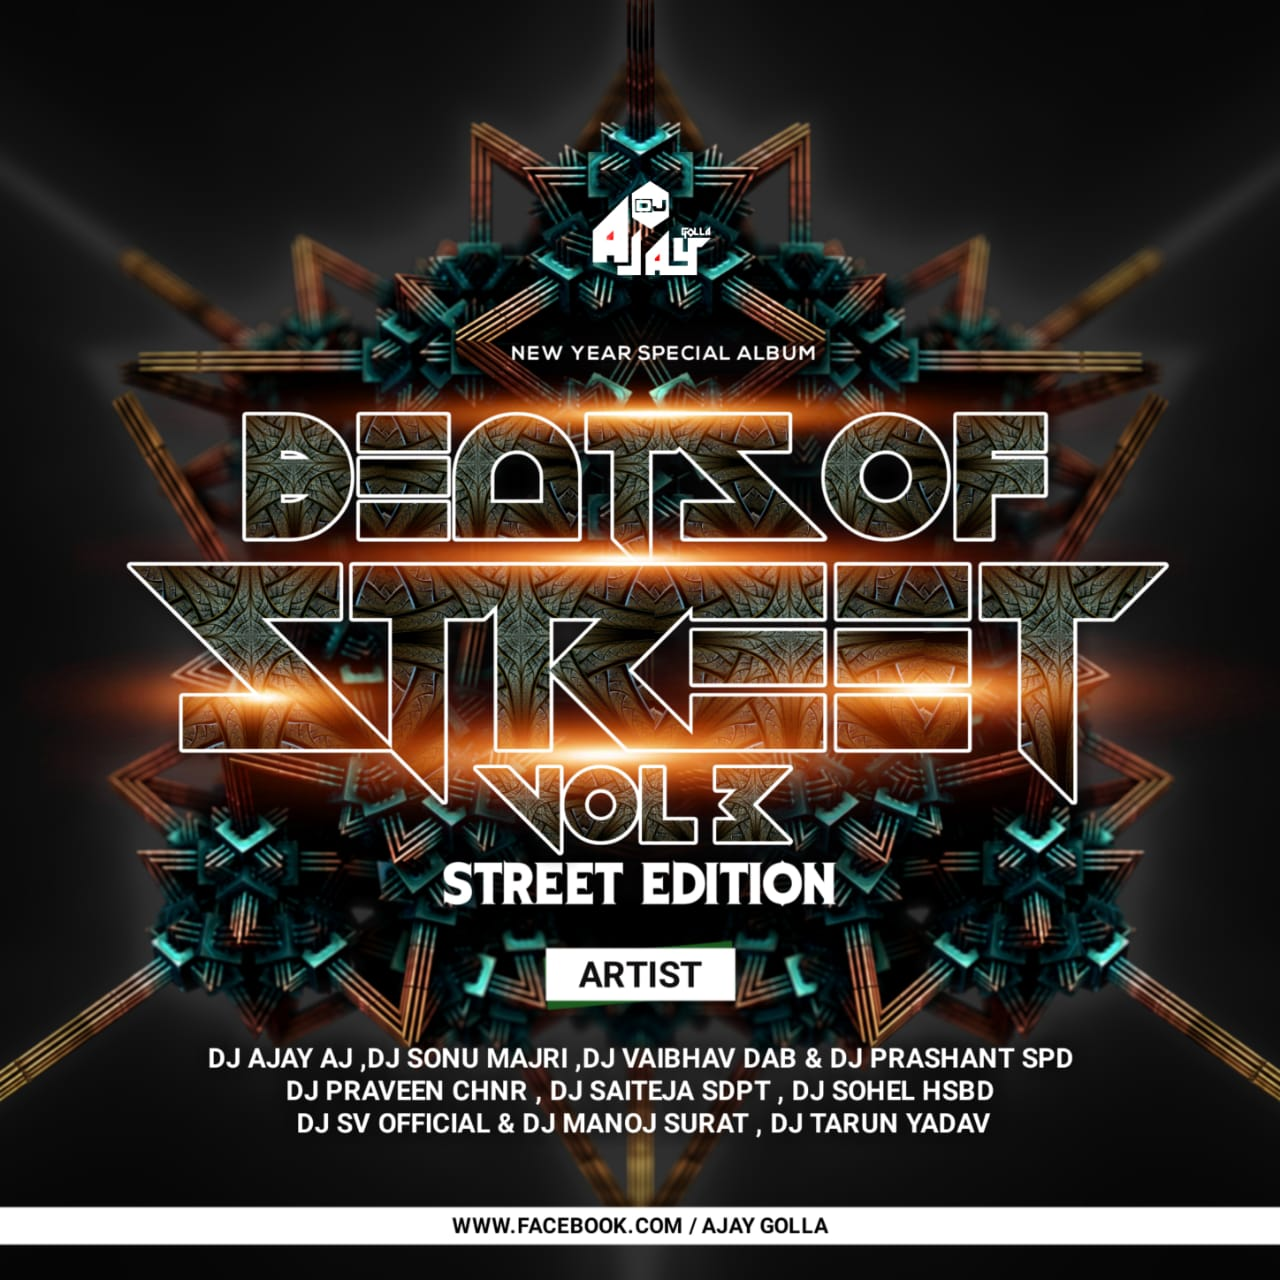 BEATS OS STREET VOL.3 (STREET EDITION) DJ AJAY AJ (NEW YEAR SPCL ALBUM)